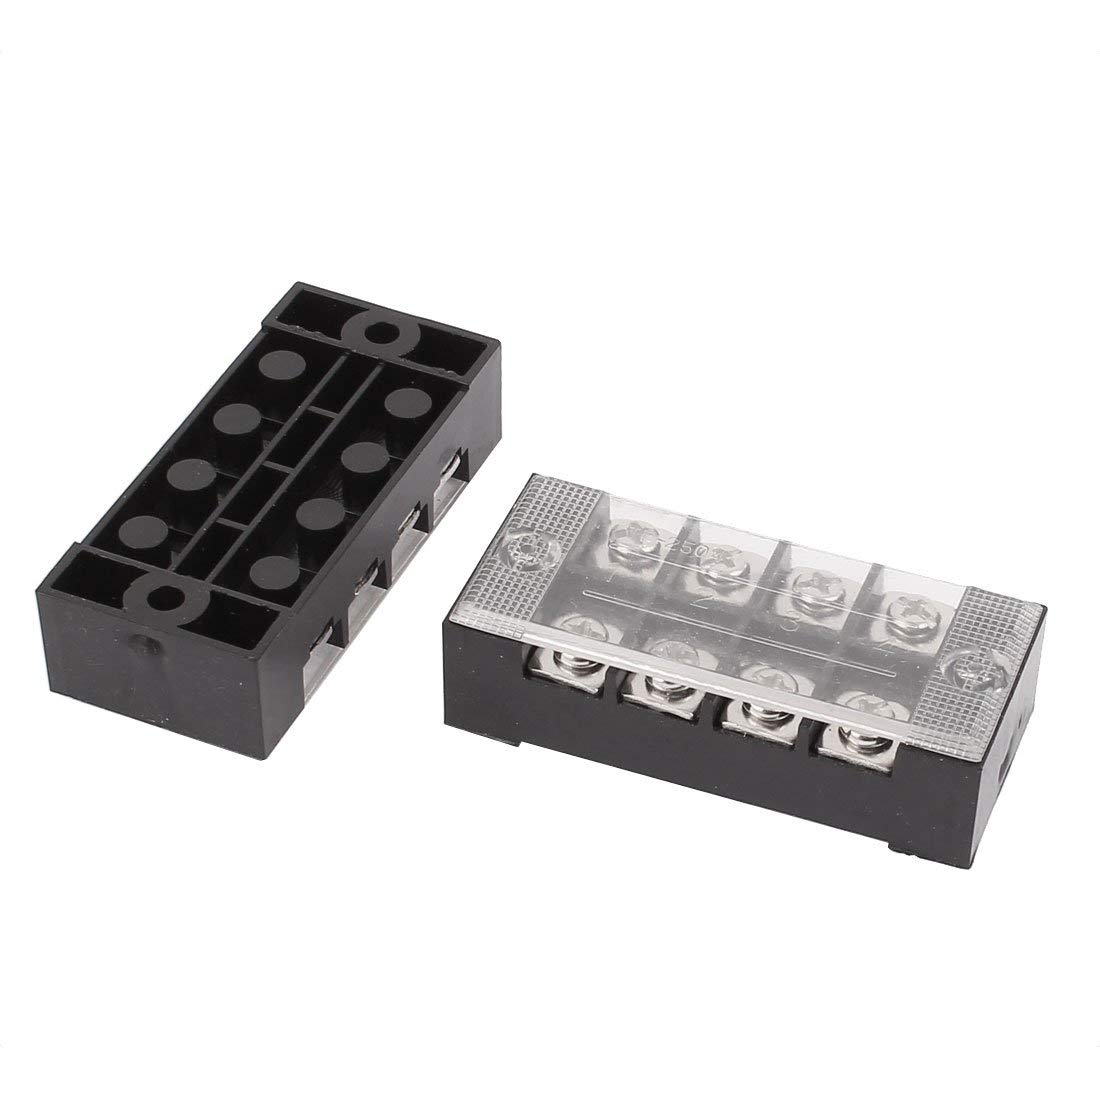 Aexit 2 Pcs 600V 25A 4P Dual Row Barrier Terminal Block Cable Connector Bar